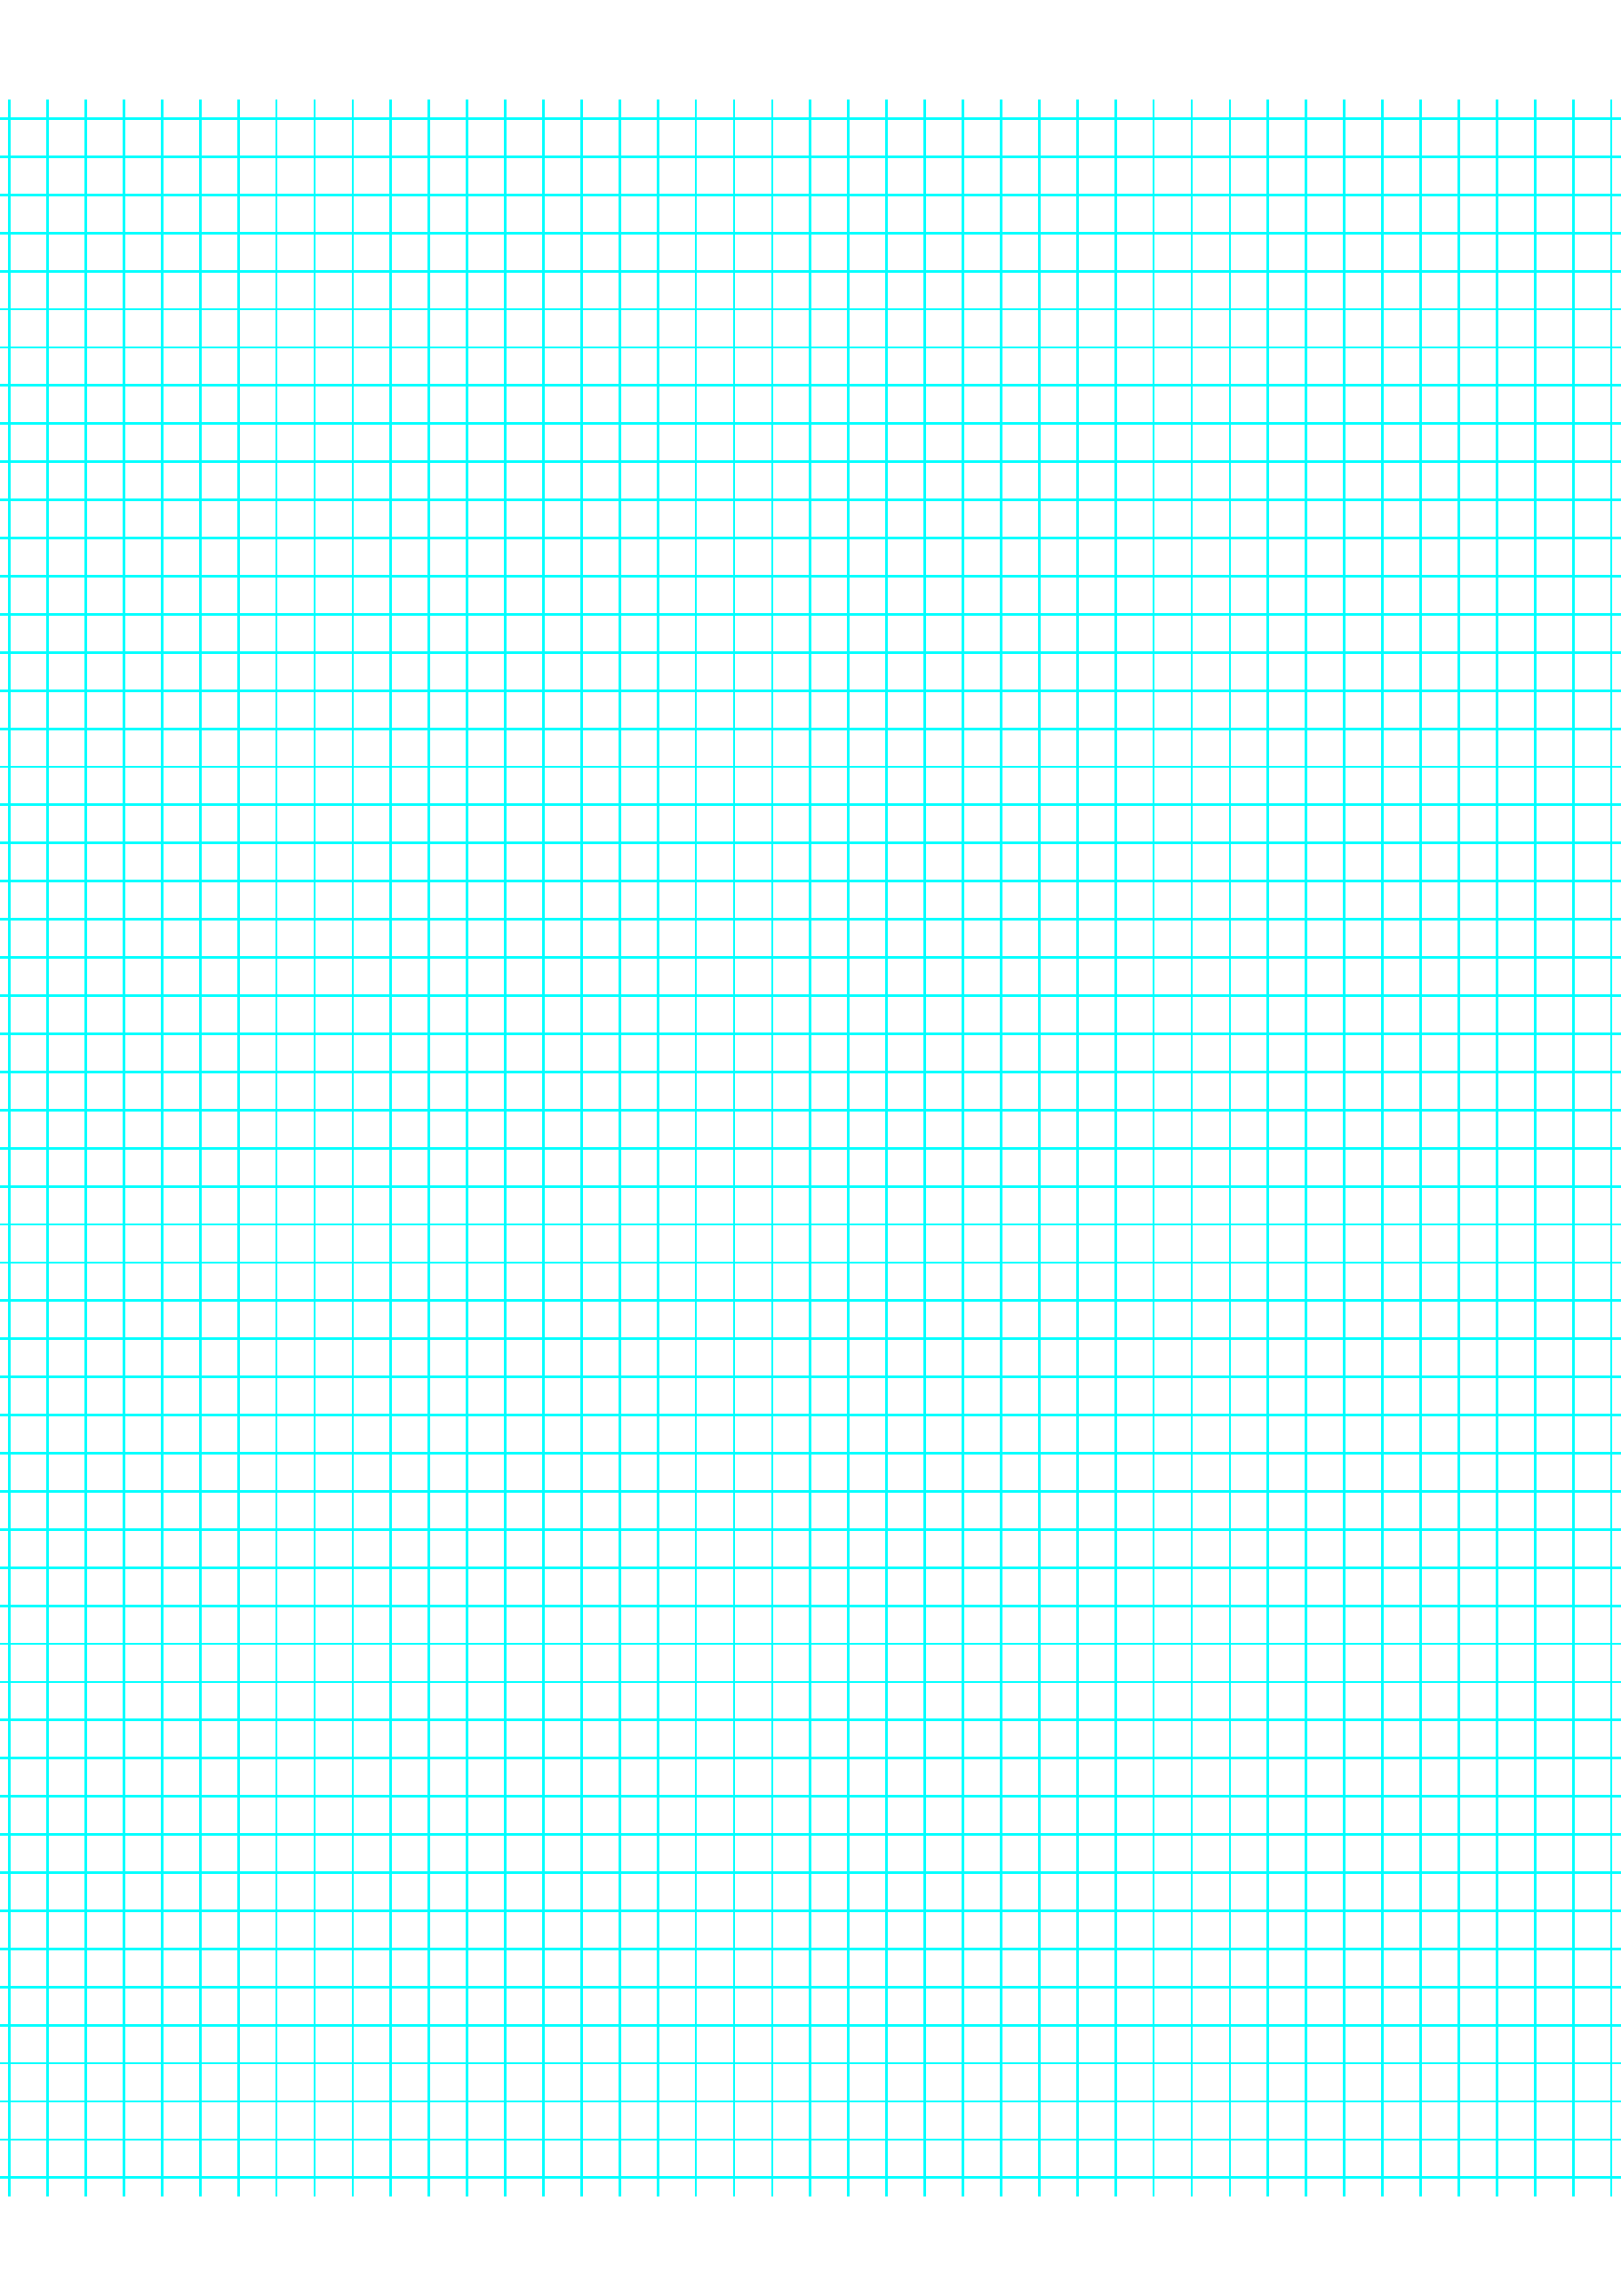 5 Lines Per Inch Graph Paper On Letter Sized Paper Free Download